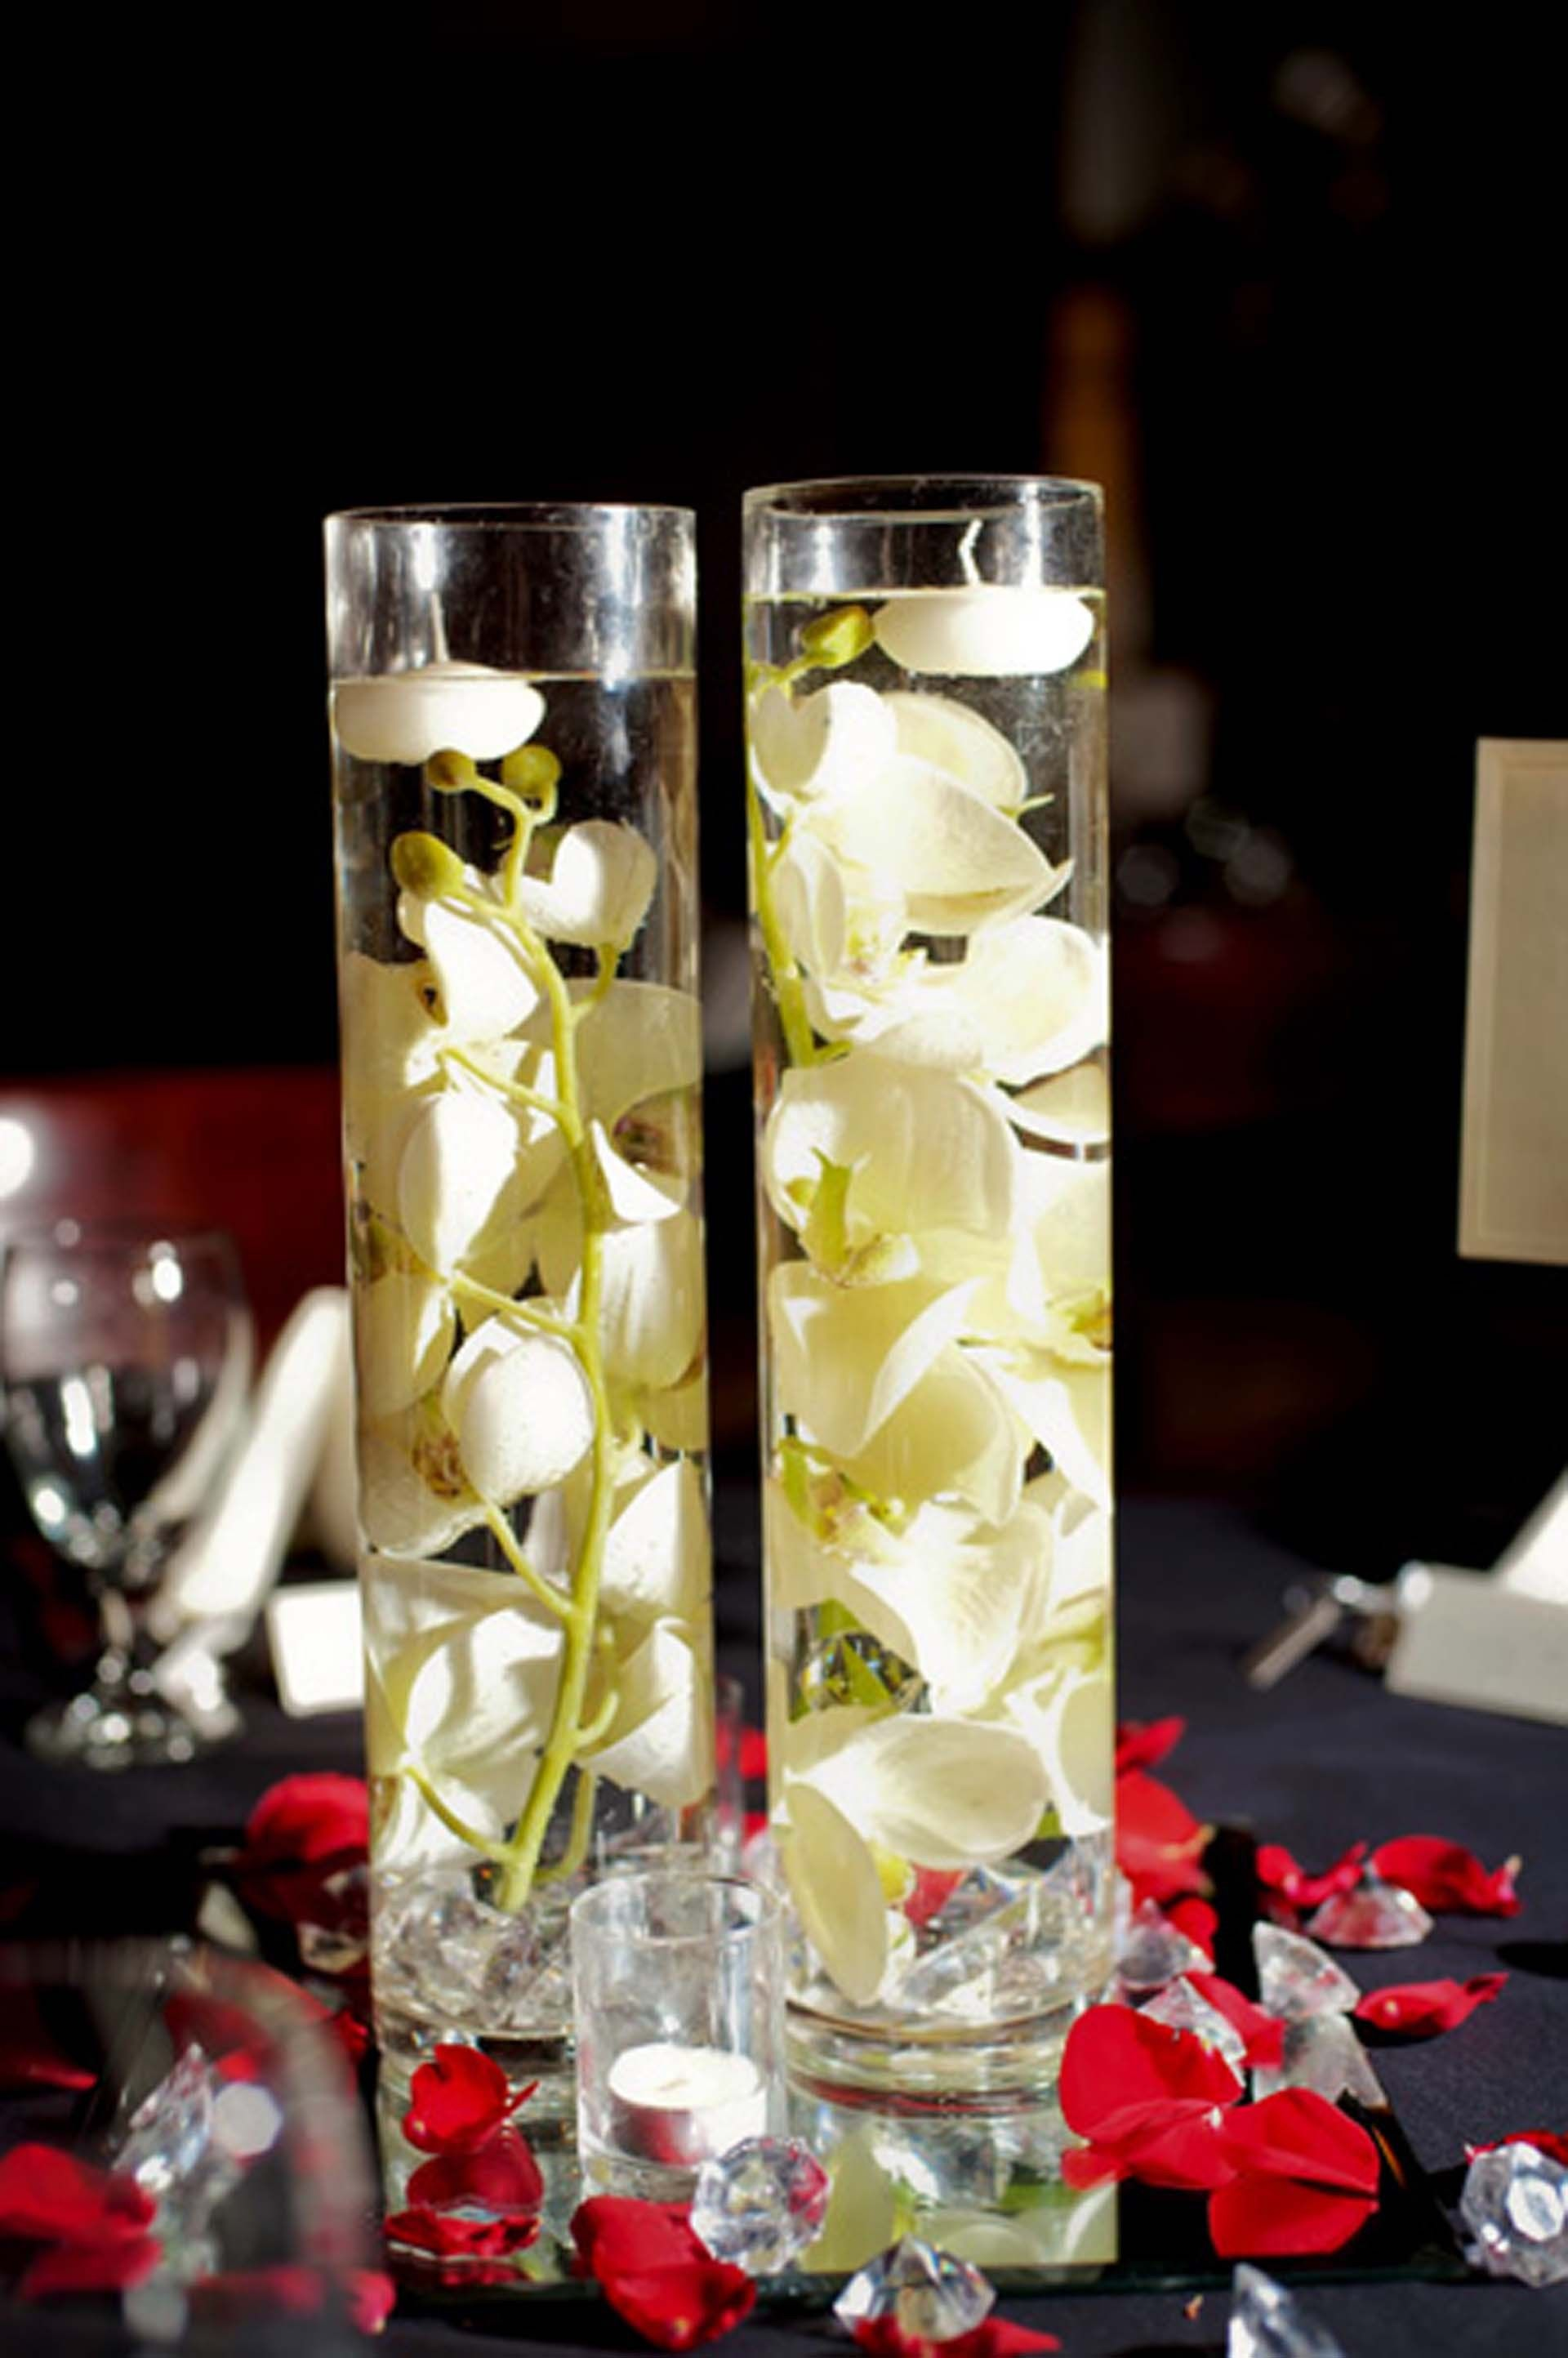 Vase sprinkled with rose petals and diamonds http brds for How to make flowers float in vases